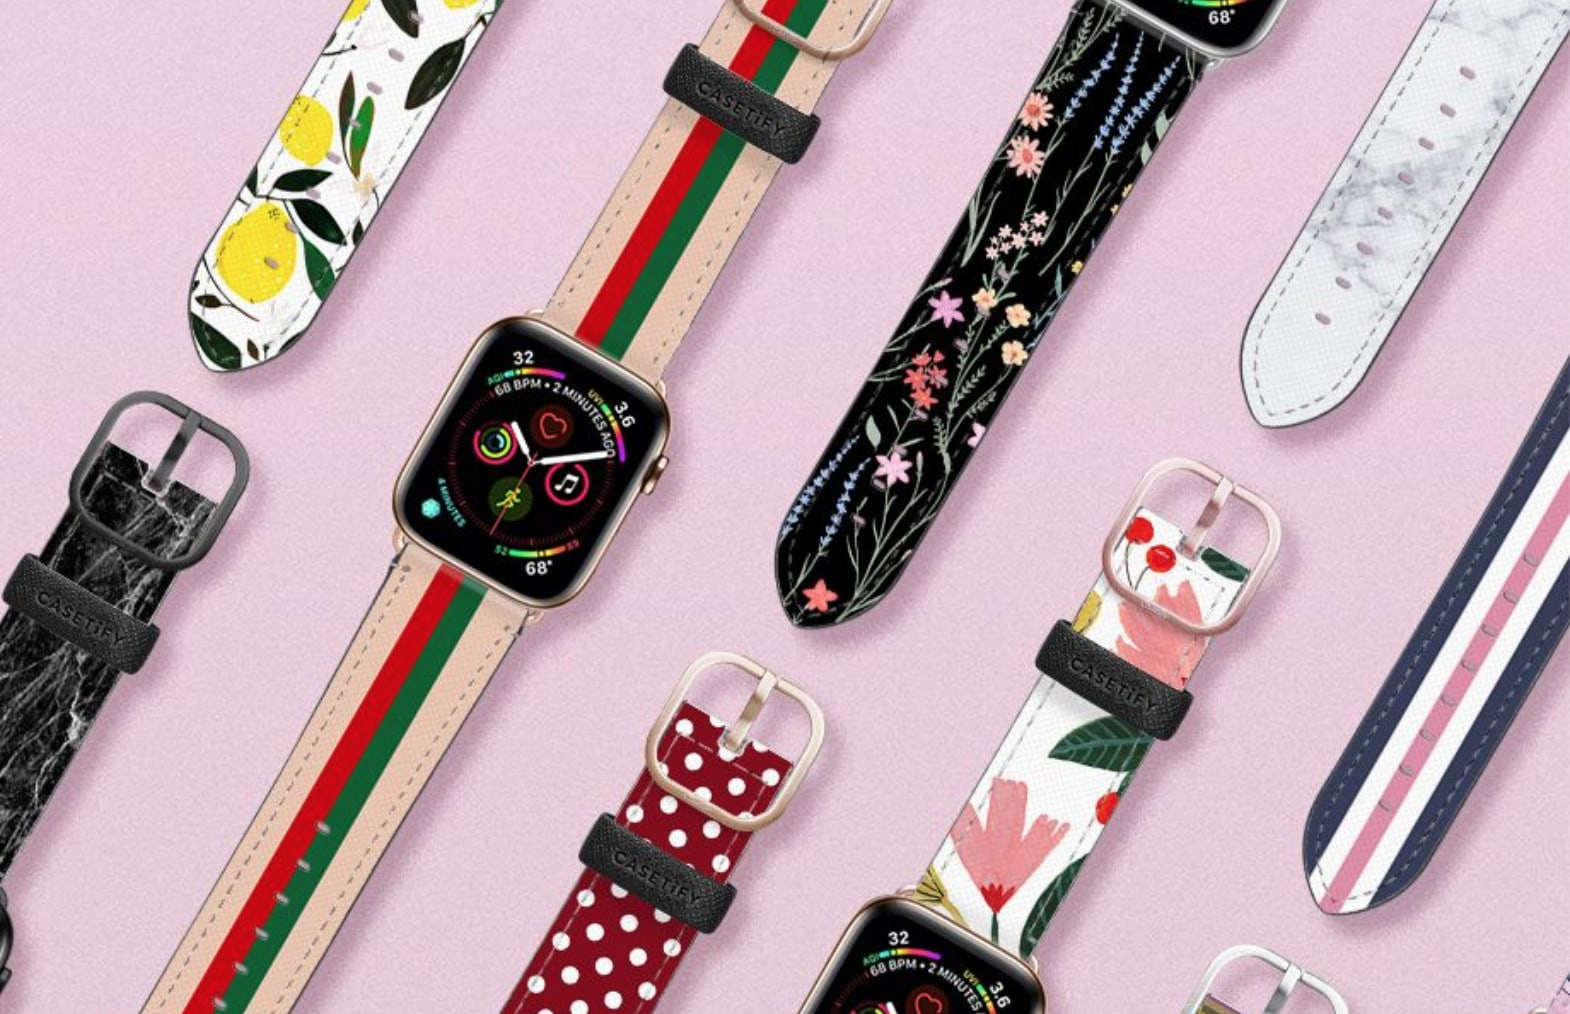 Casetify Apple Watch bands come in vibrant prints in Saffiano leather, offering tons of exclusive designs to light up eyes and match your every mood.